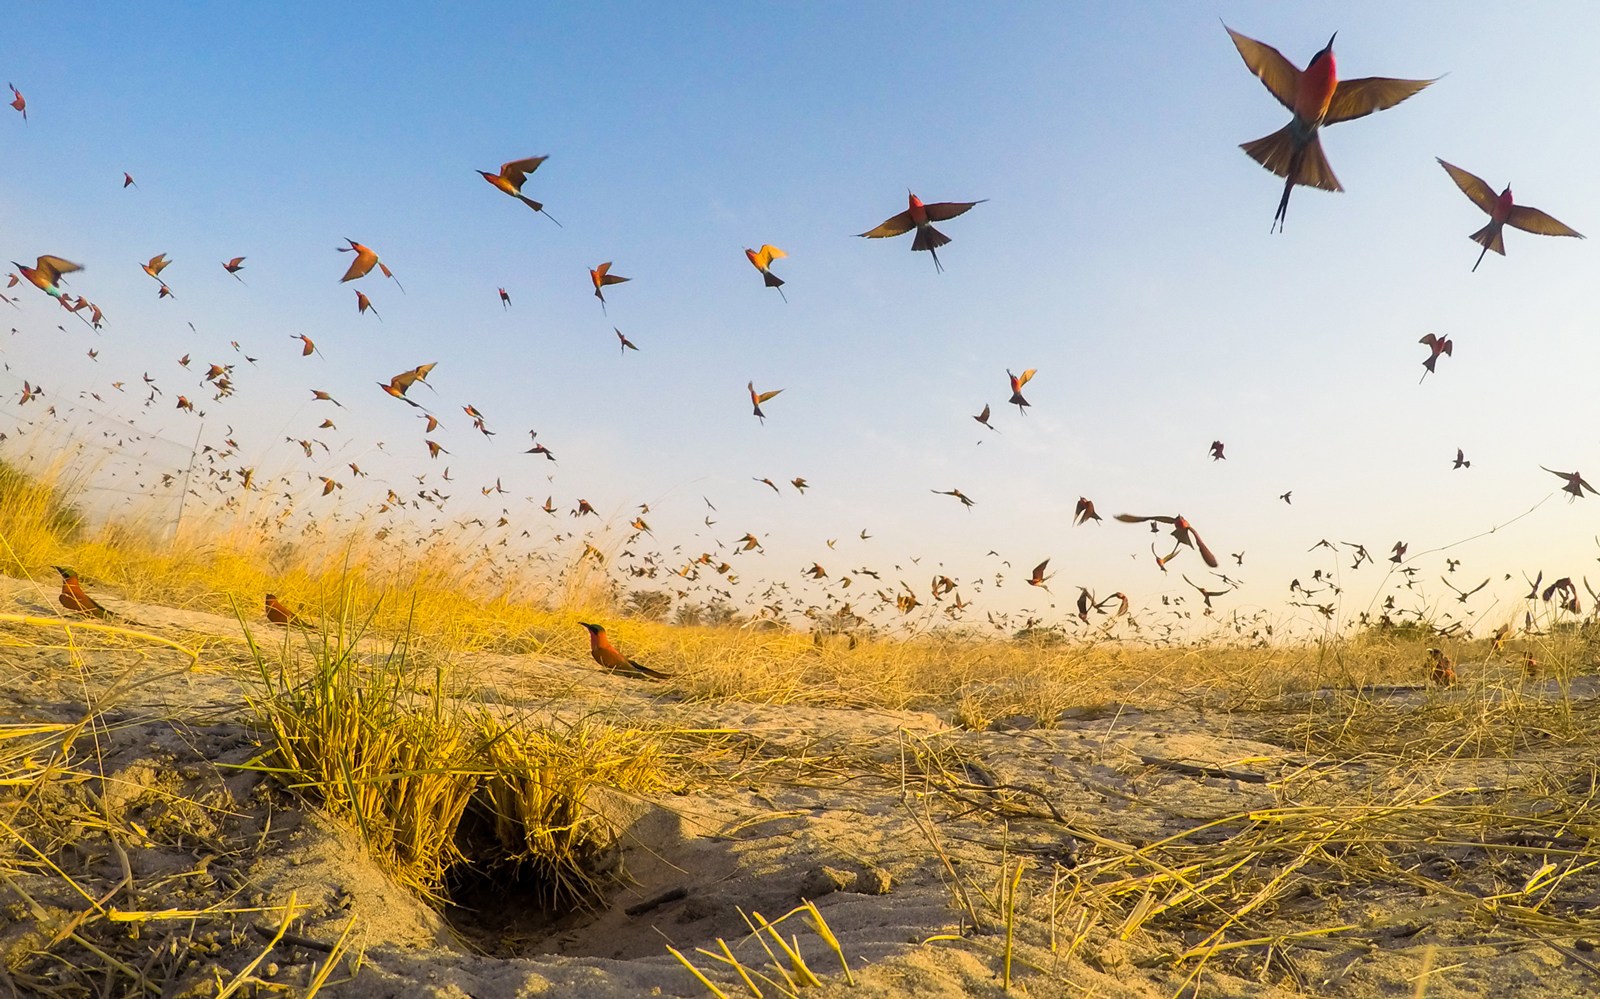 Thousands of carmine bee-eaters take off from their nesting grounds on the Zambezi River, Namibia ©Jason Lee Boswell